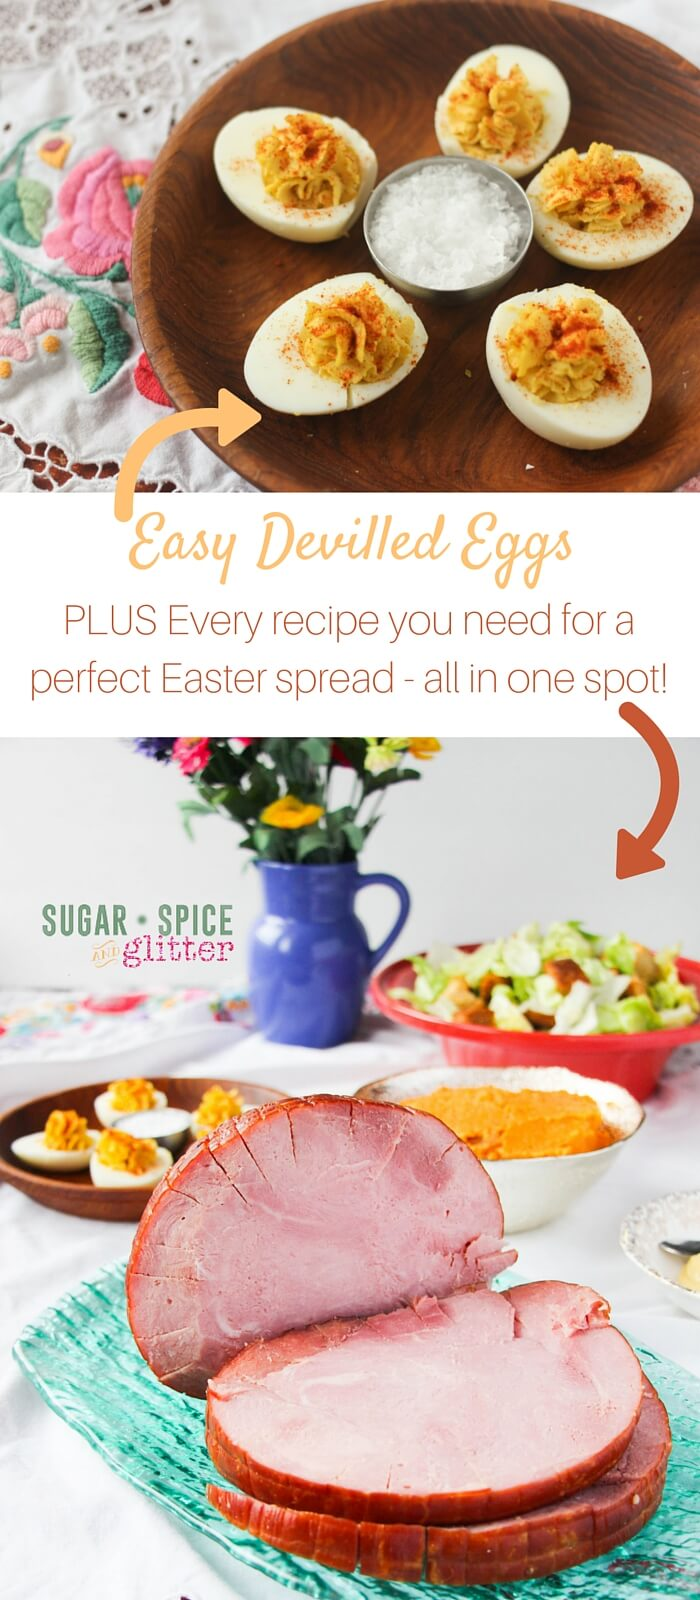 Easy Devilled Eggs, Honey-Caramel Ham, No-Mayo Caesar Salad, and more! Every Easter recipe you're going to need for the perfect Easter supper menu